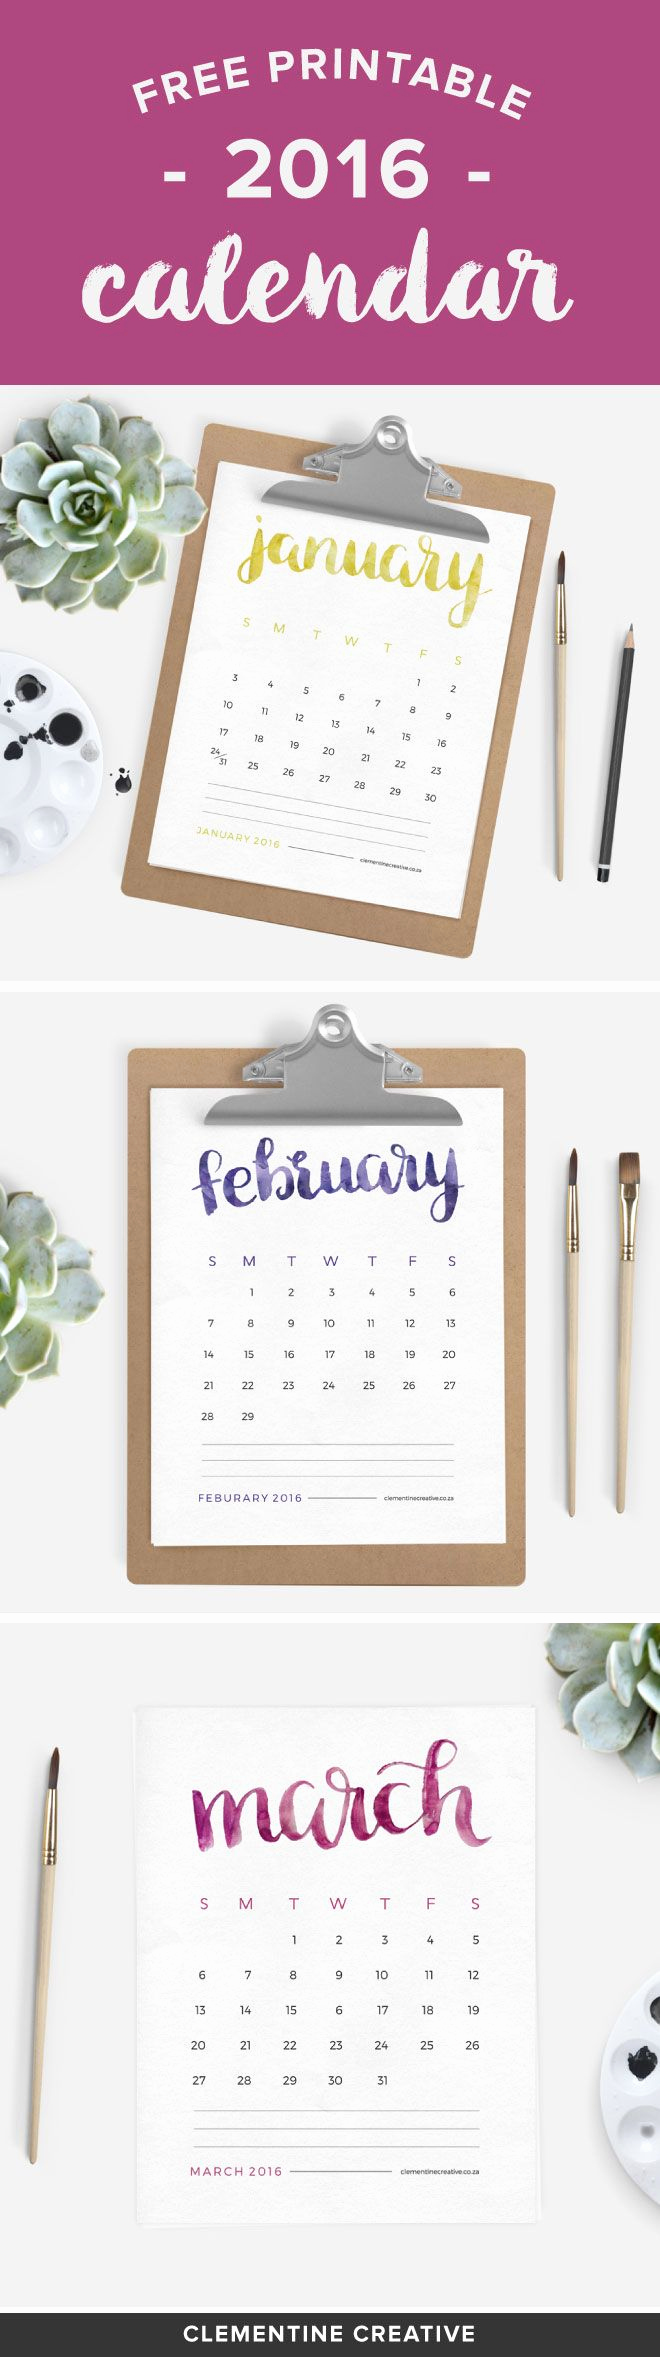 Making A Calendar Free Fresh 25 Best Ideas About Diy Calendar On Pinterest